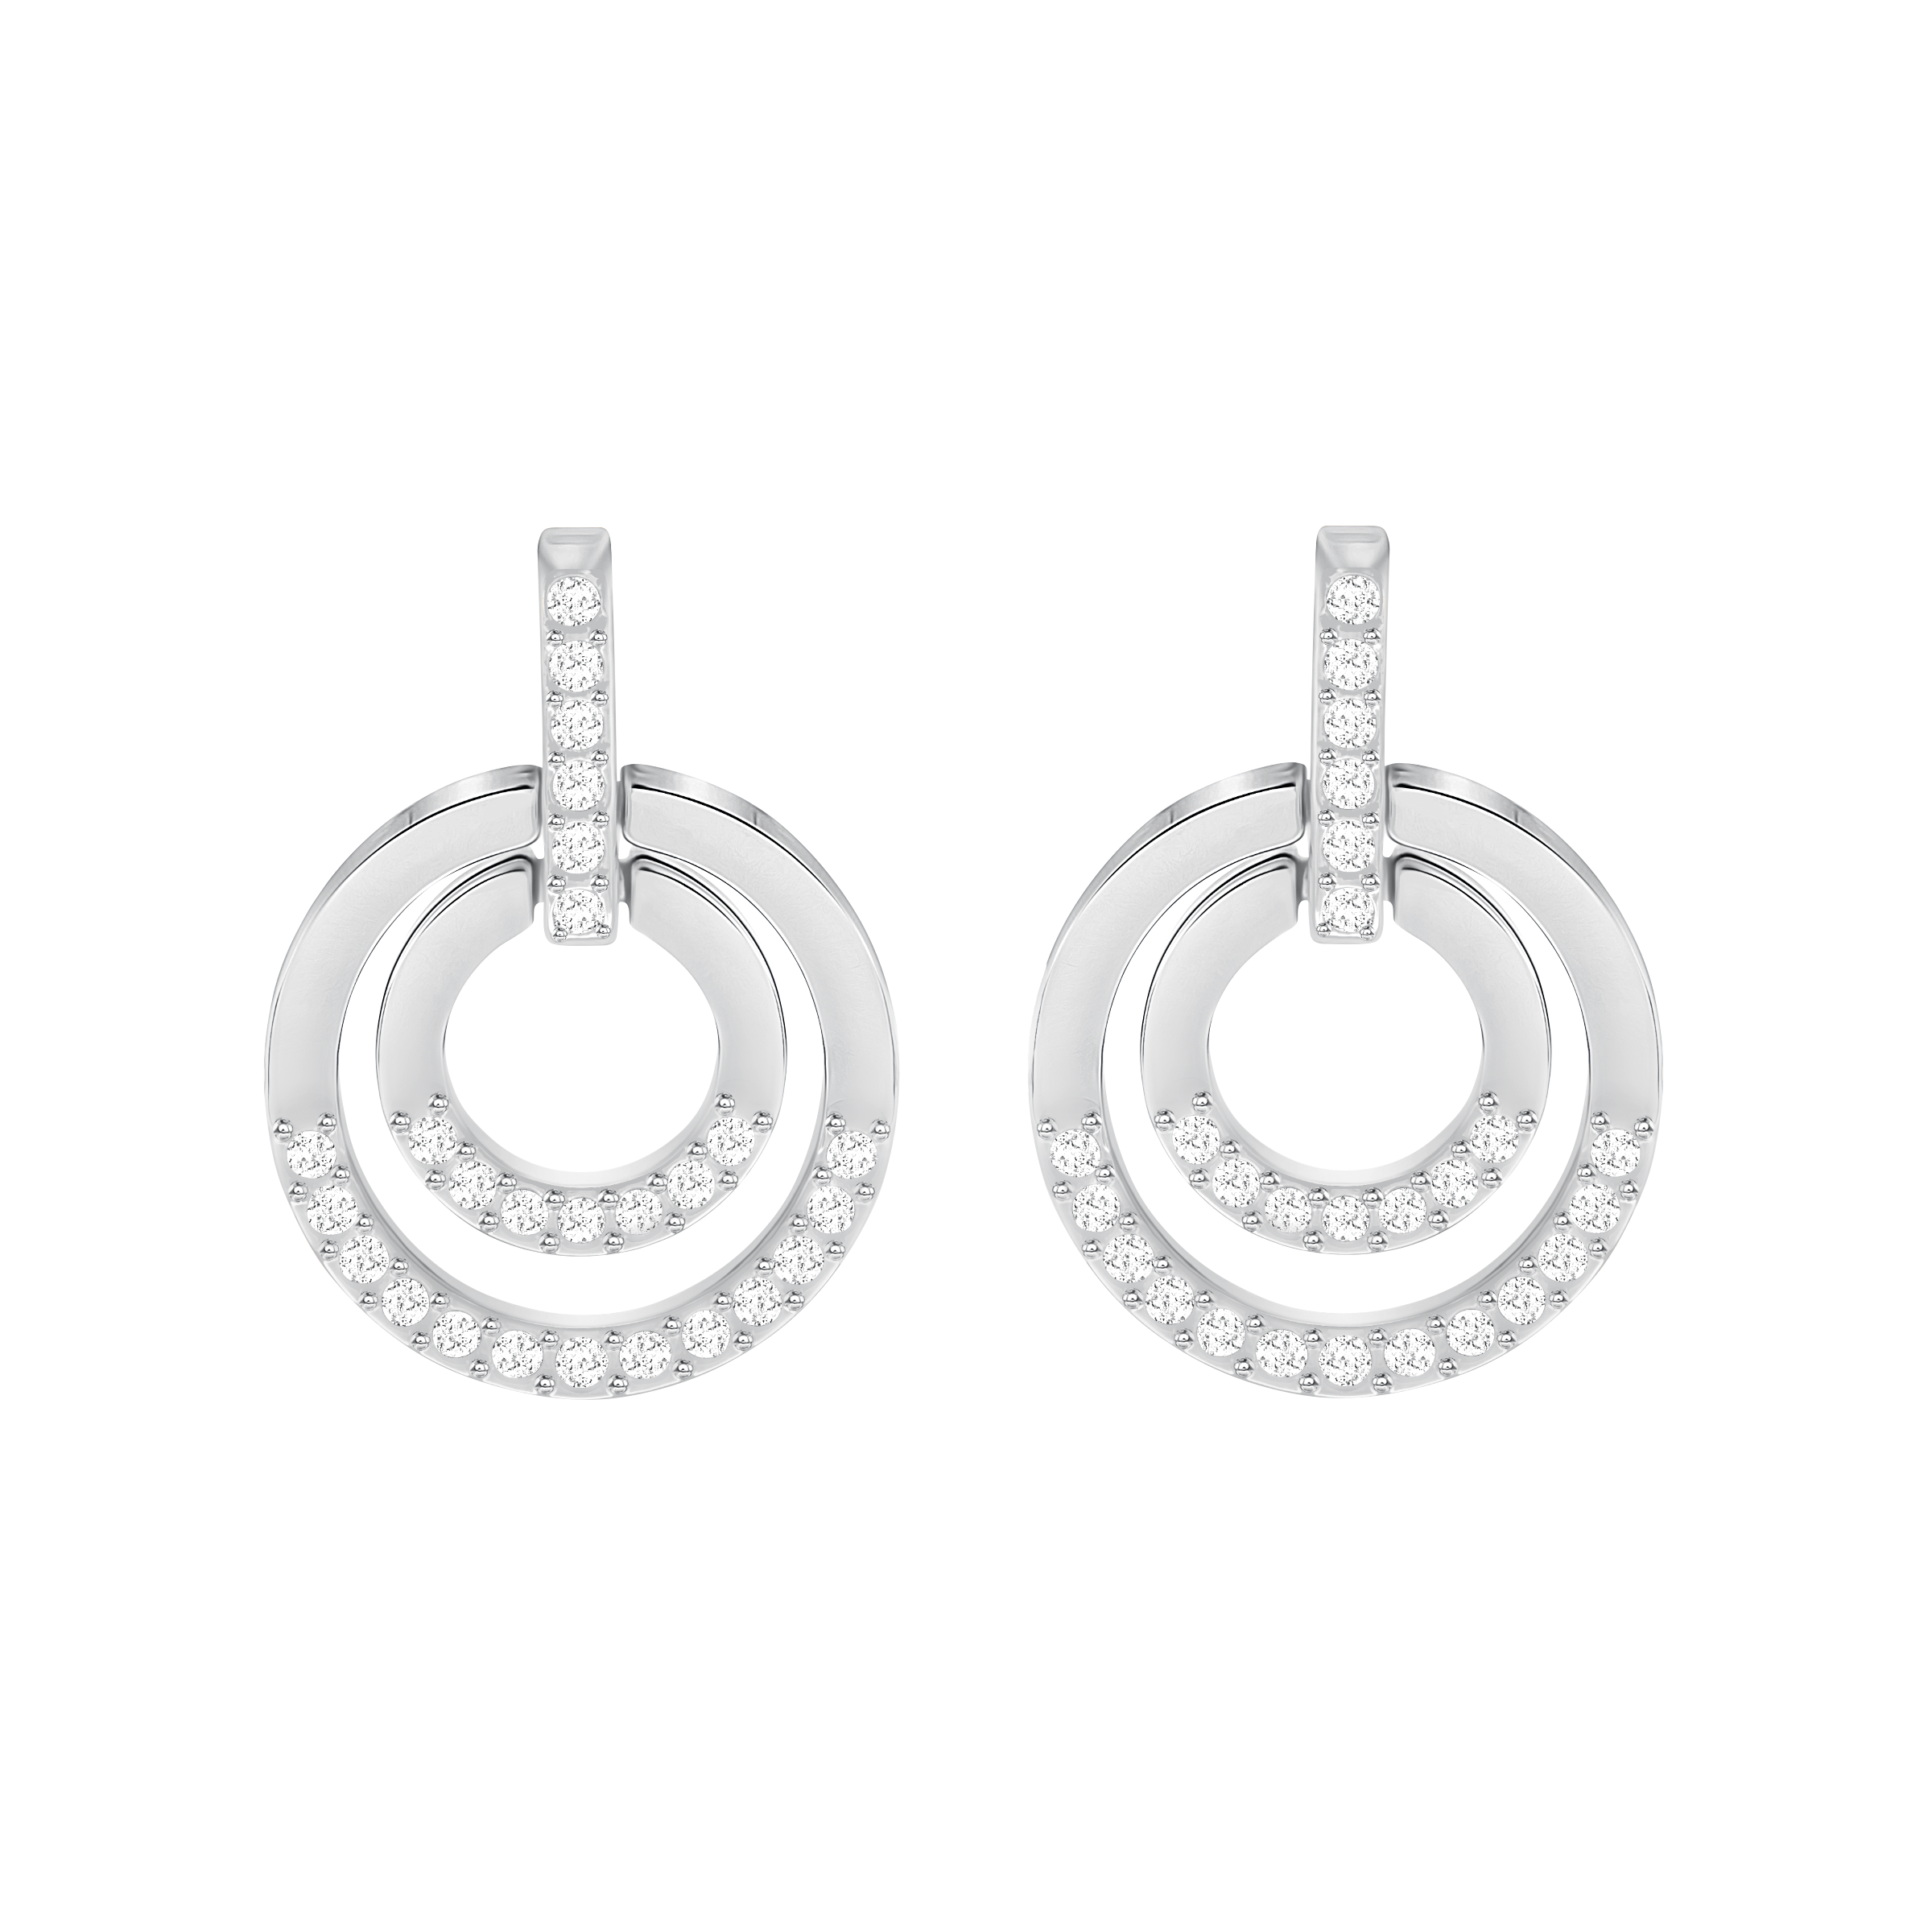 Circle Pierced Earrings, Medium, White, Rhodium Plated